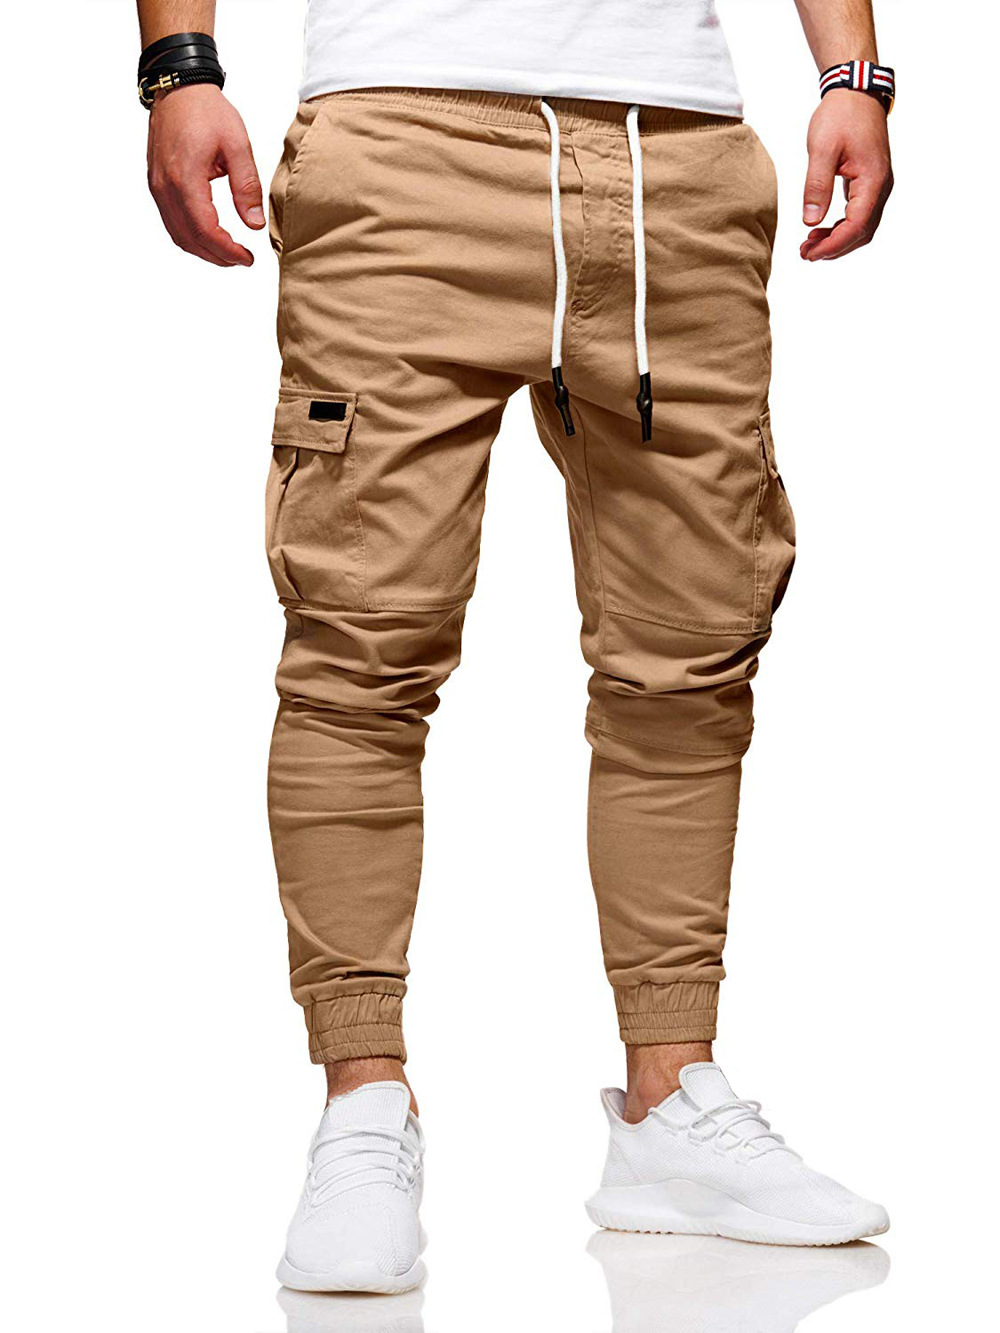 Puimentiua 2019 New Style Fashion Hot Solid Pocket Men's Jogger Pants Urban Hip Hop Harem Casual Trousers Slim Fit Elastic